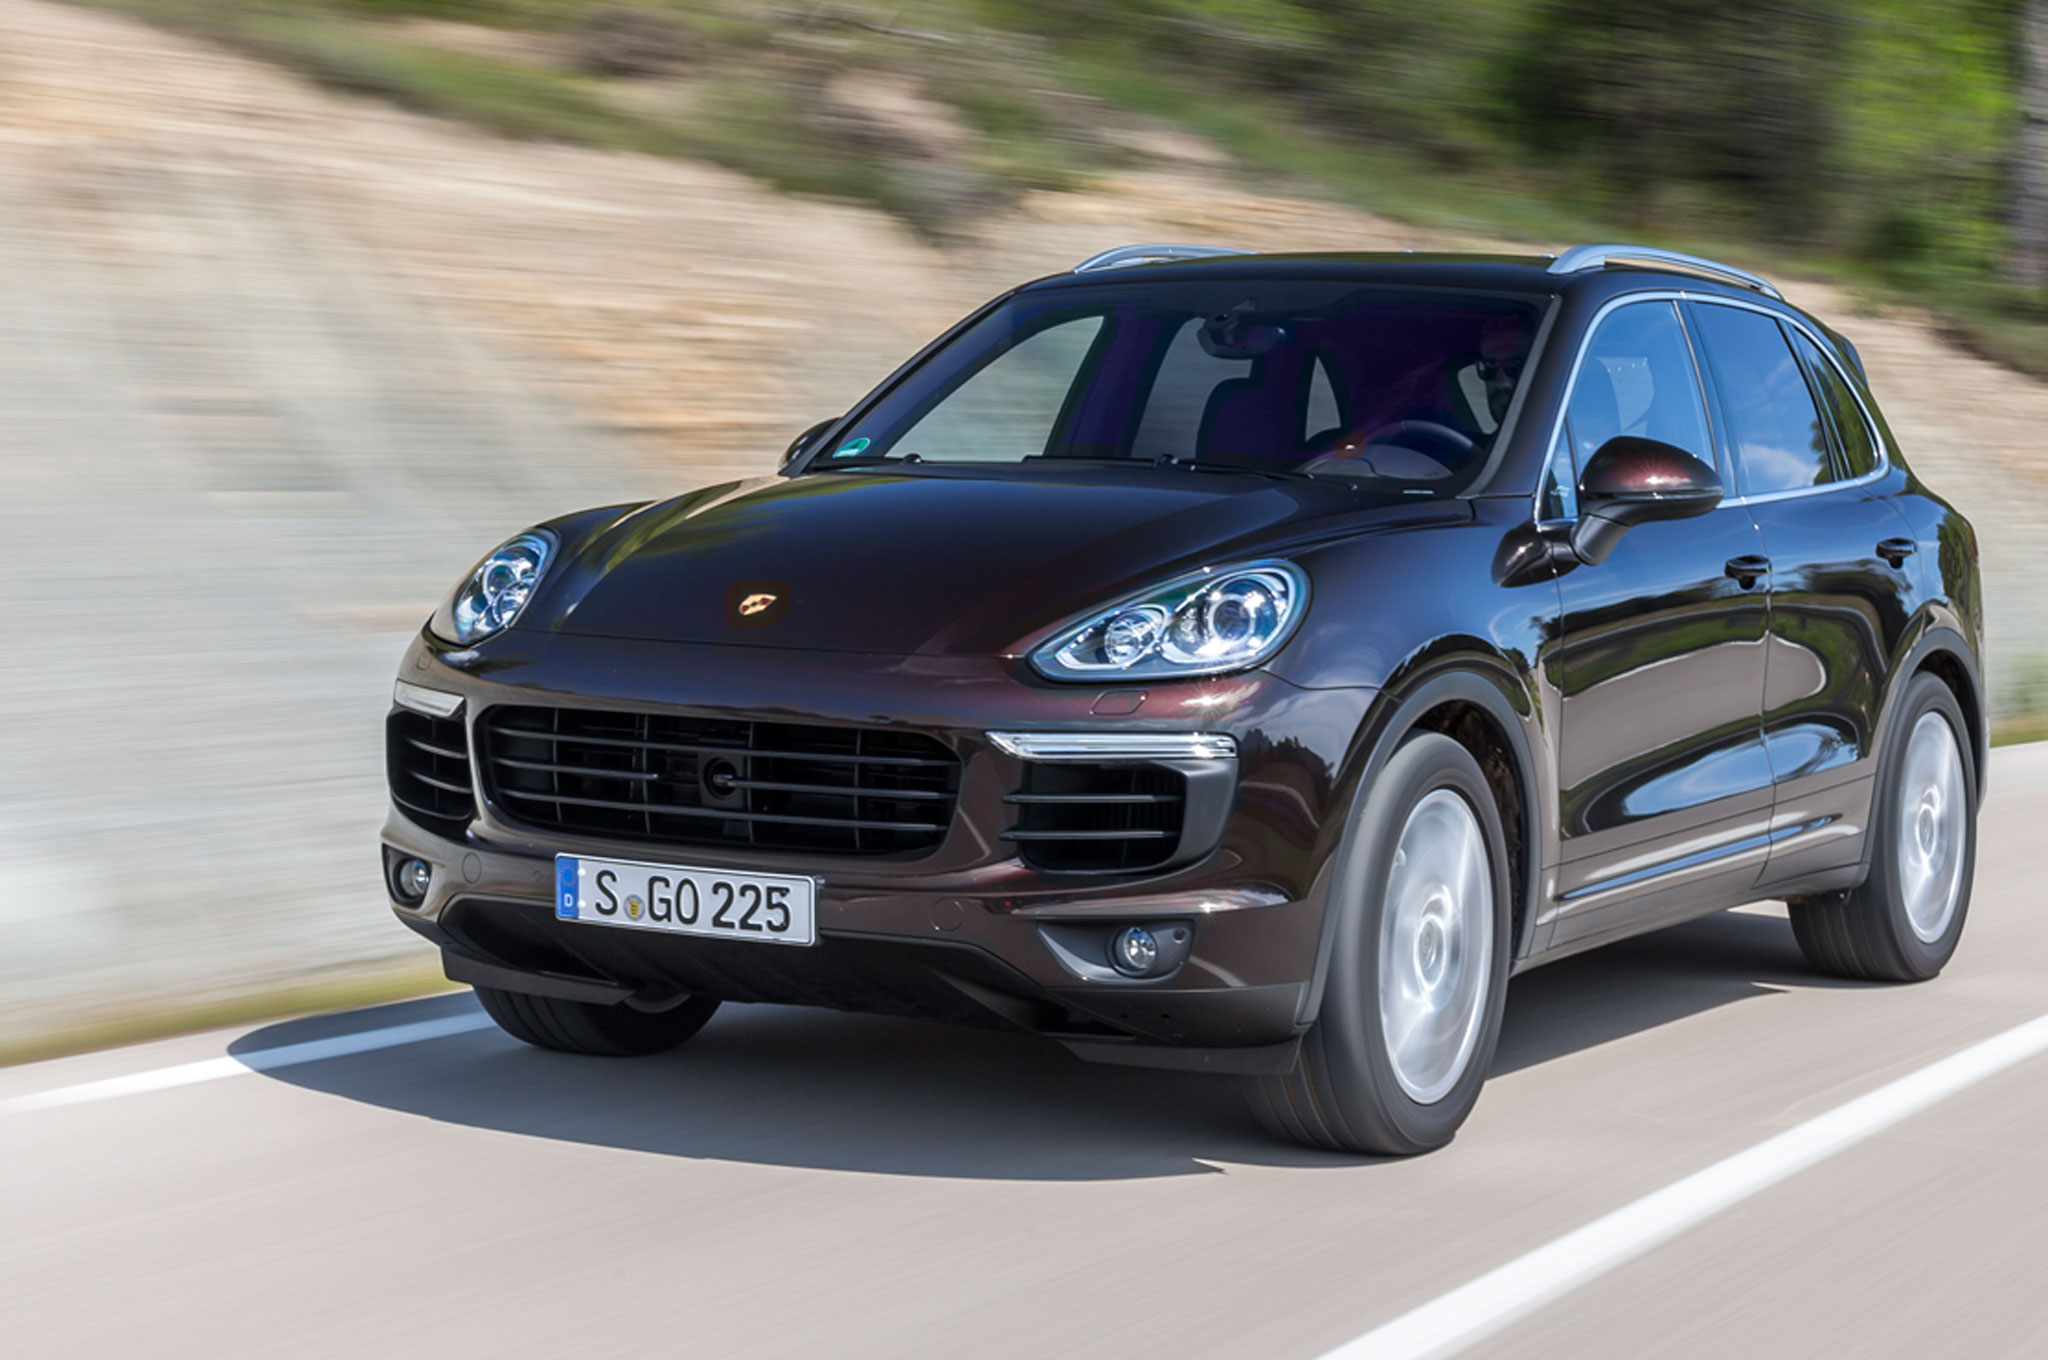 2015 porsche cayenne s palladium metallic is a golden custom. Black Bedroom Furniture Sets. Home Design Ideas